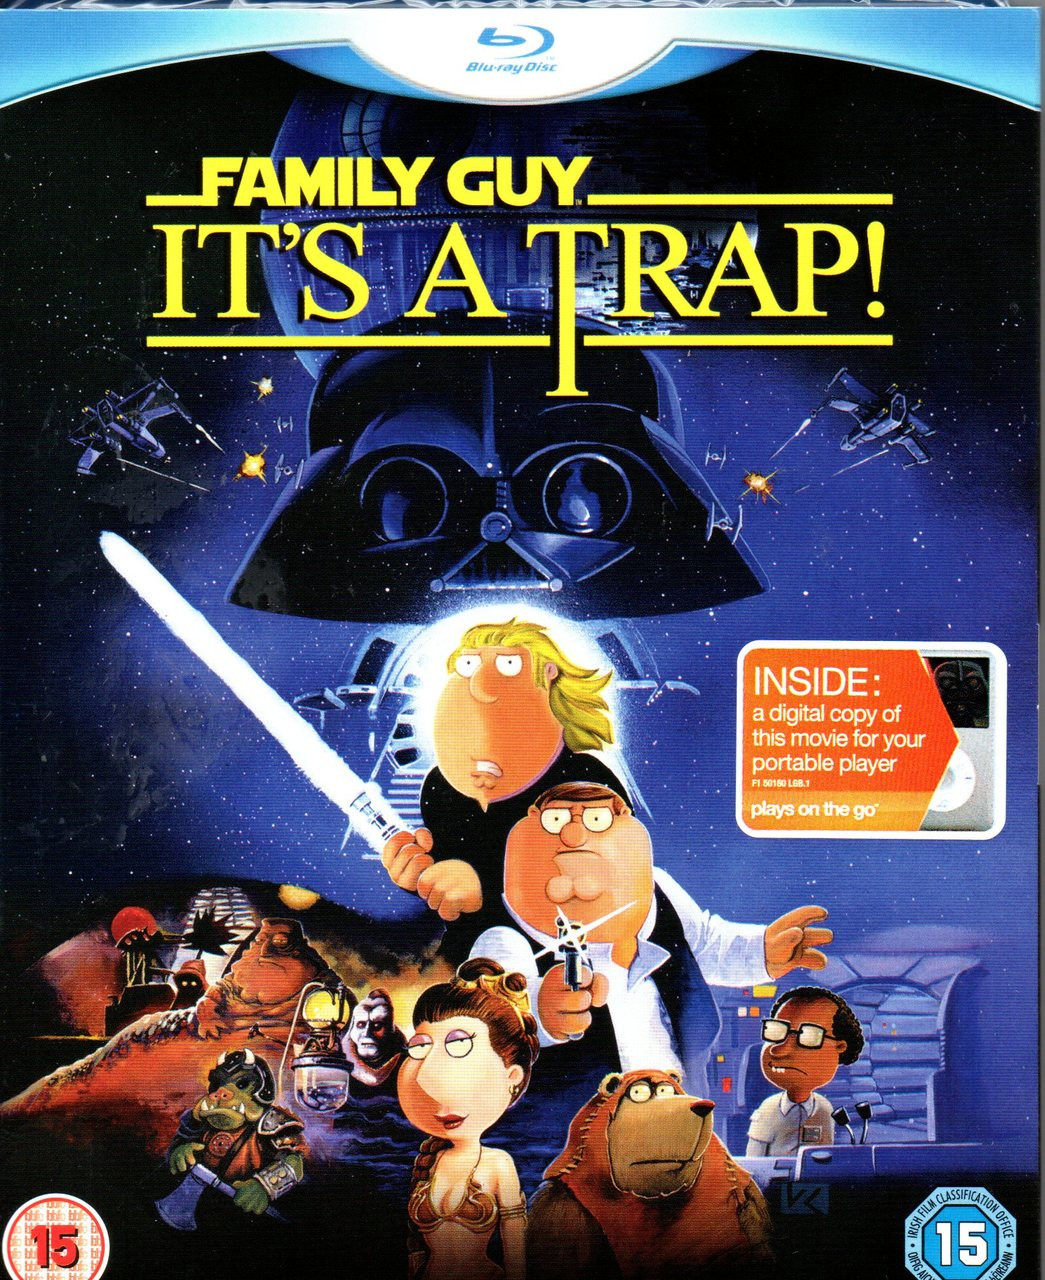 Family Guy - It's A Trap! (Blu-ray + DVD + Digital Copy)-Region B -Brand New-Still Sealed